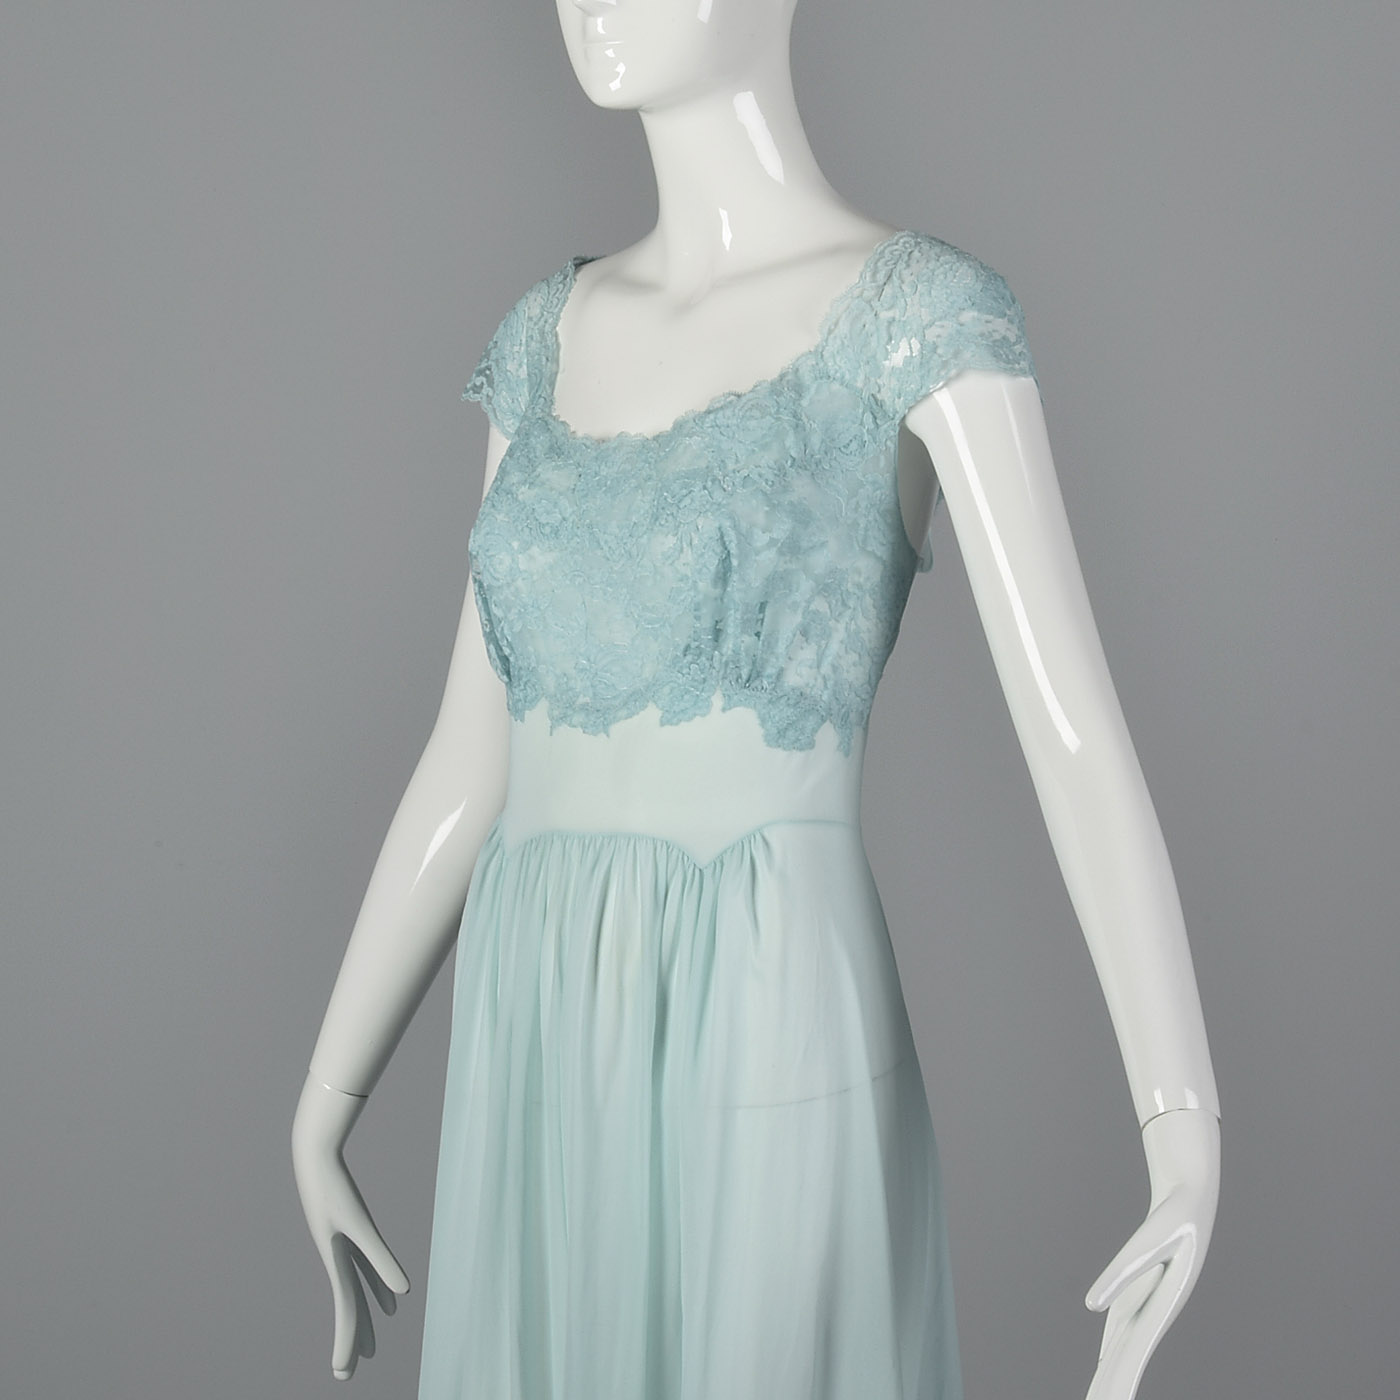 e159392a32 M 1950s Vanity Fair Long Blue Nightgown Lace Shelf Bust Sleepwear Lounge 50s  VTG